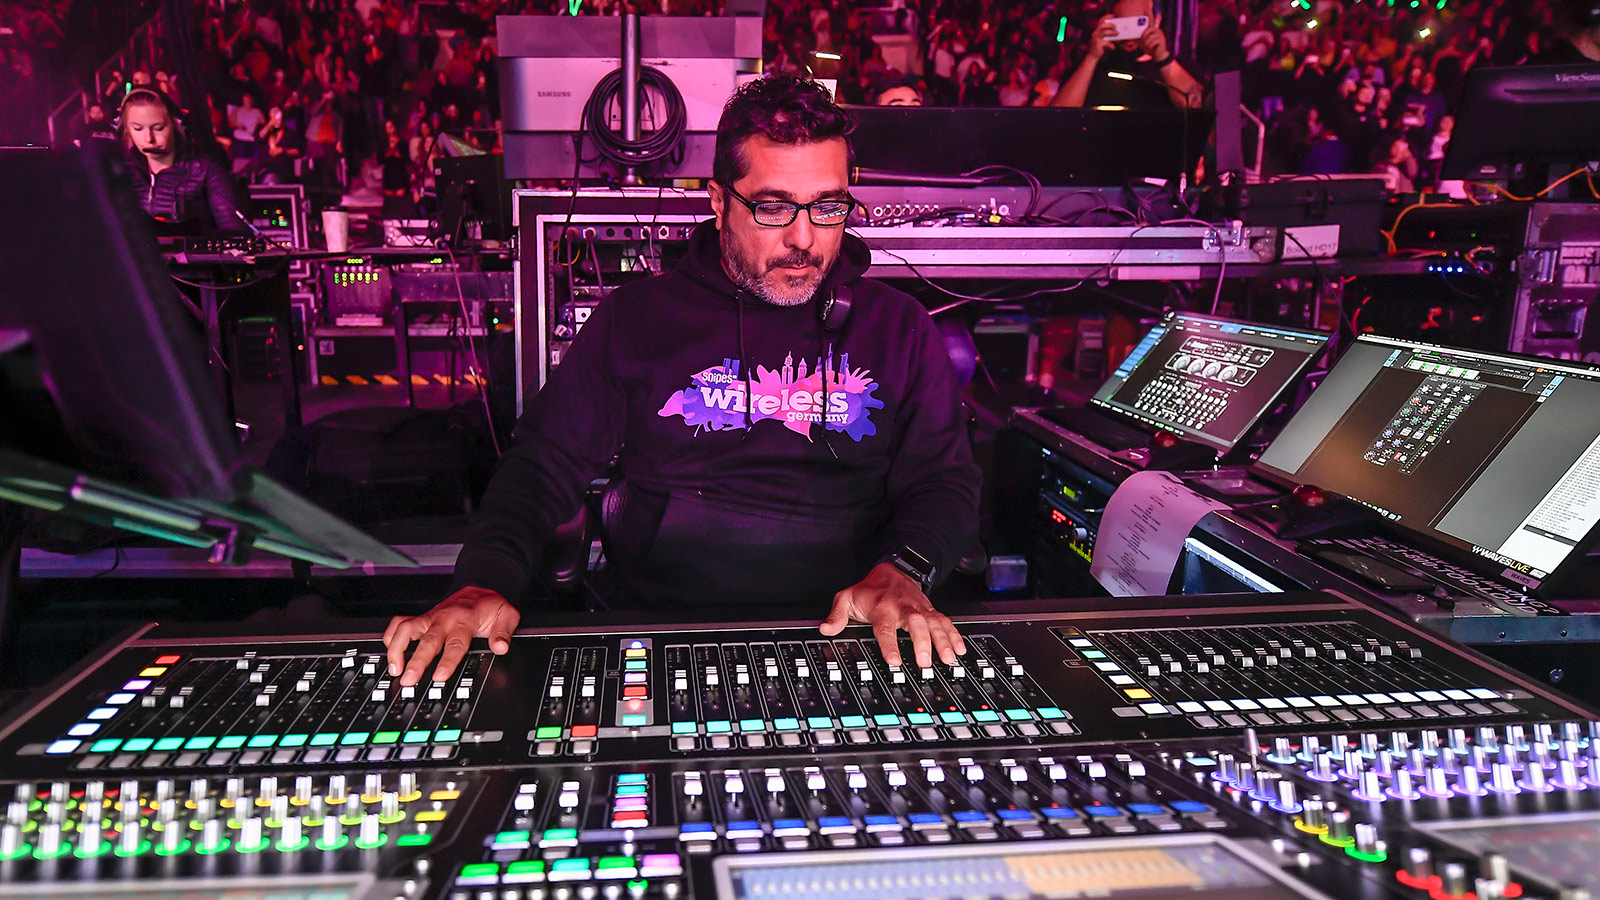 John Buitrago, FOH Engineer